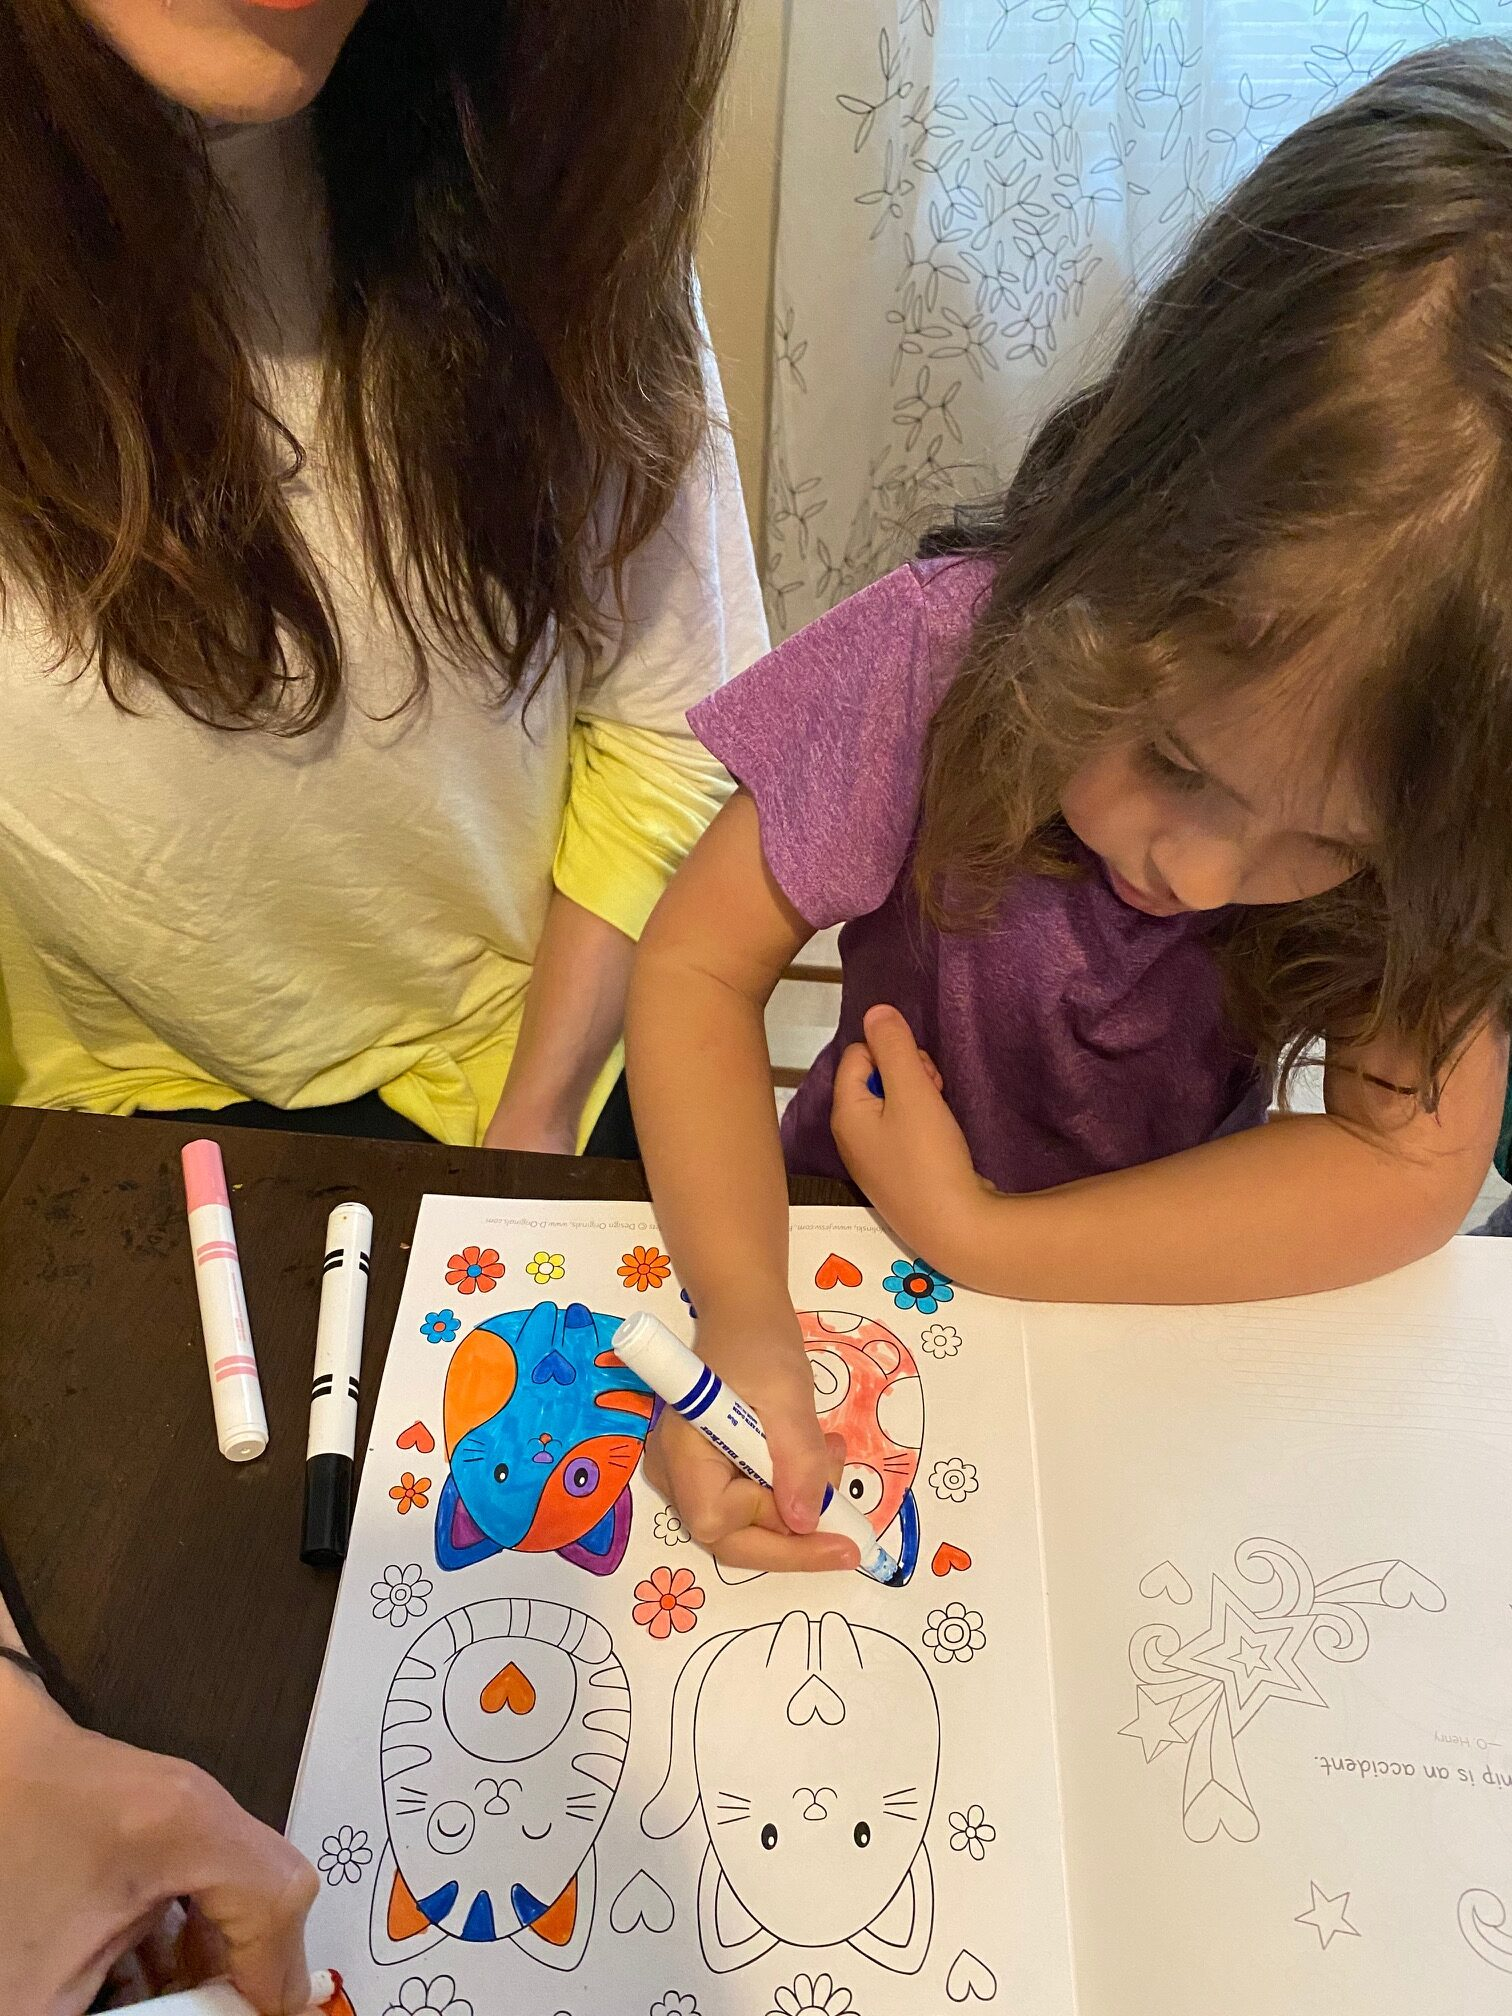 personalized colorings books from Fox Chapel Publishing.